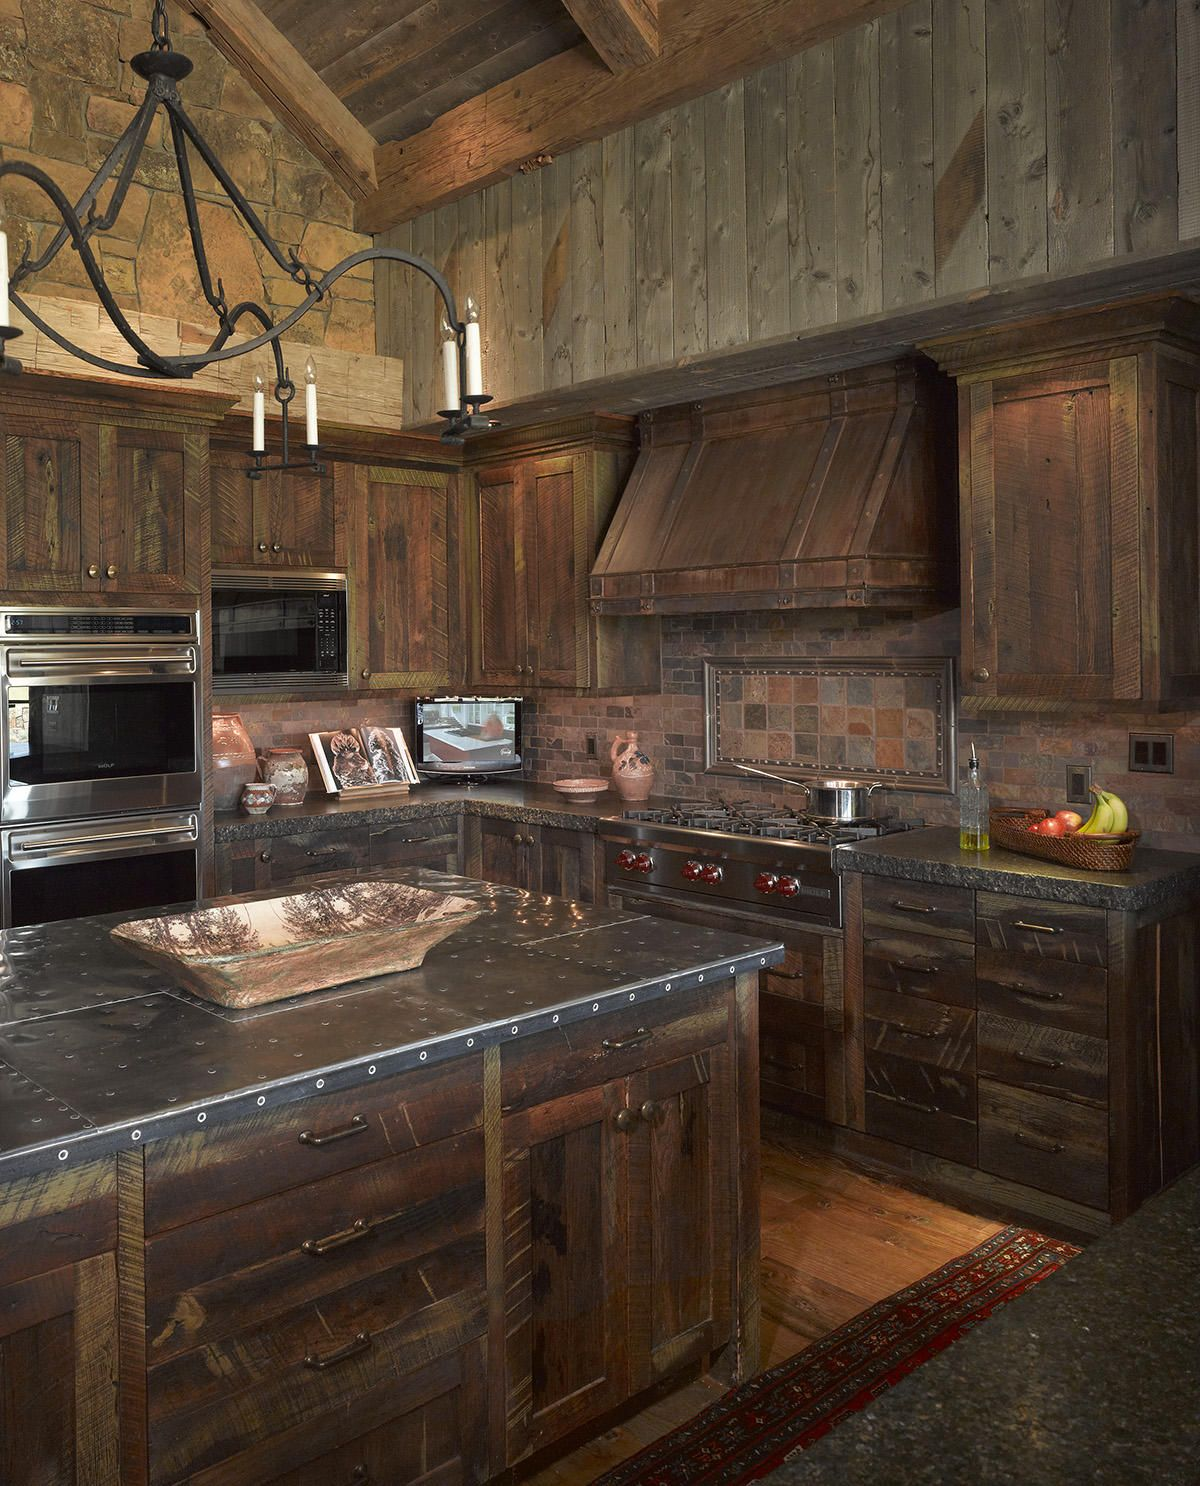 Cowboy Kitchen: Bruce Kading Interior Design - Wyoming Getaway